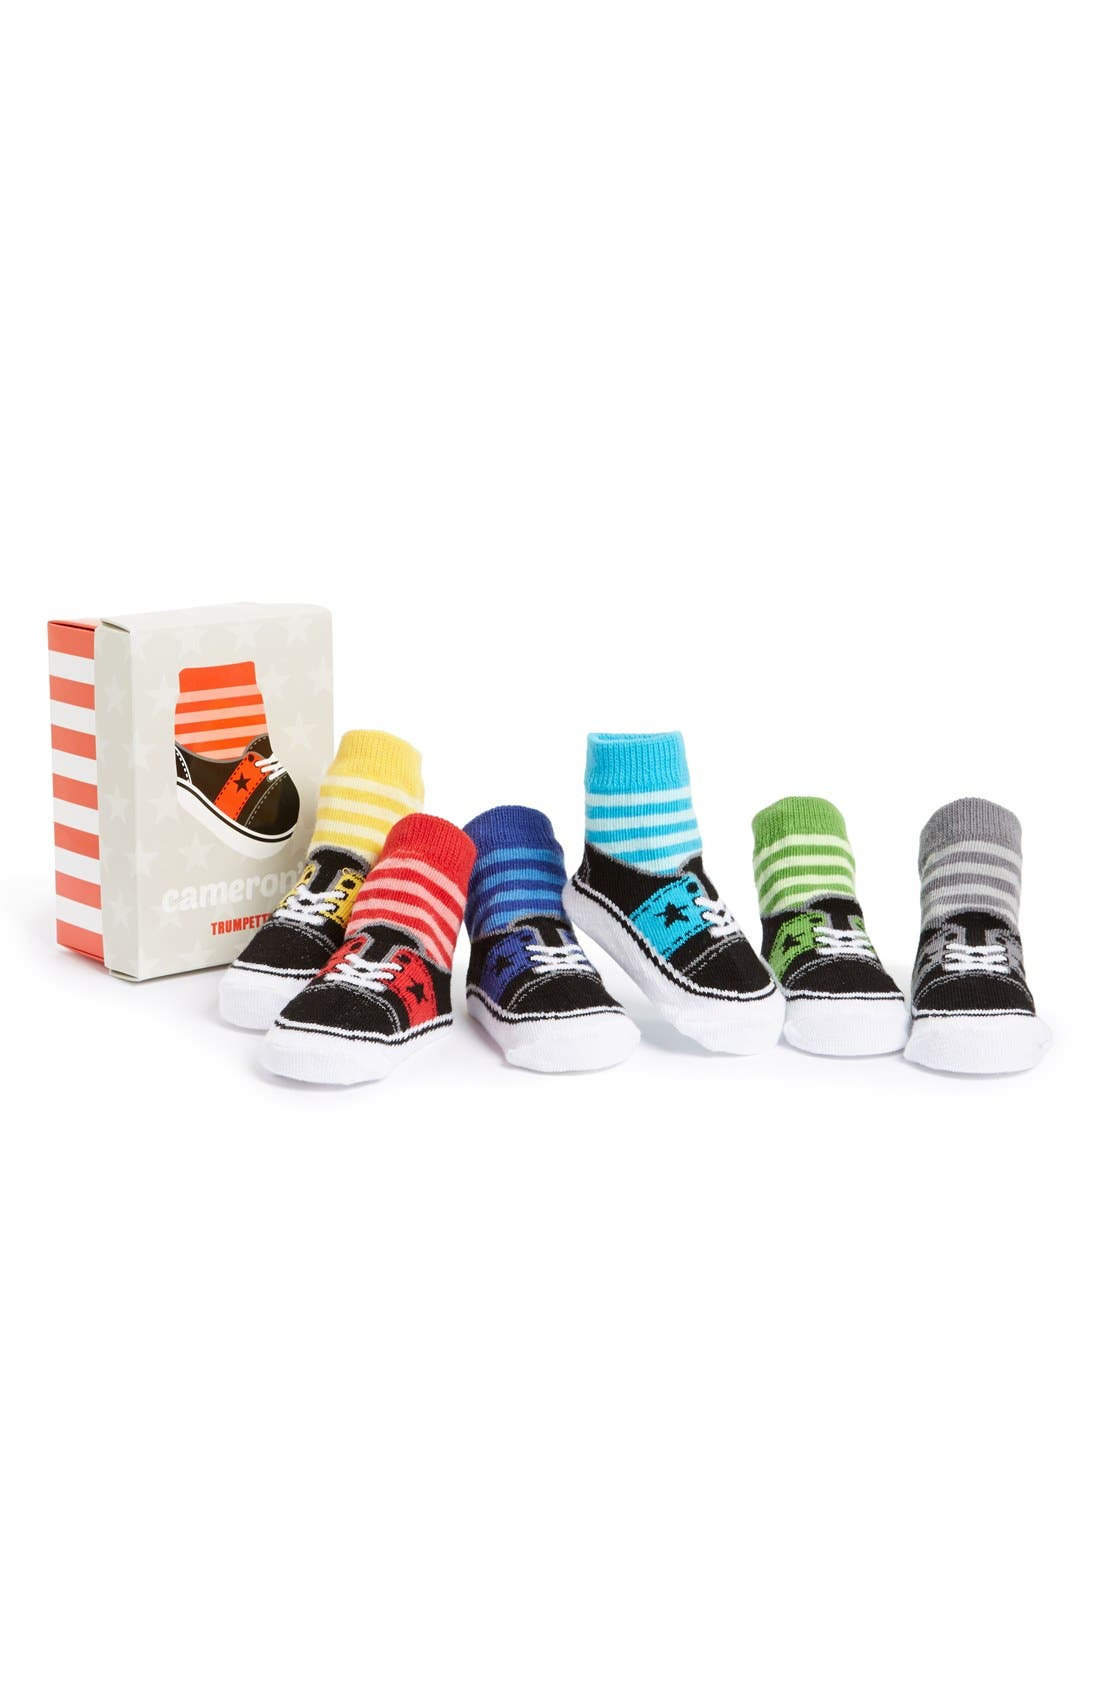 Cameron 6-Pack Socks,                             Main thumbnail 1, color,                             ASSORTED